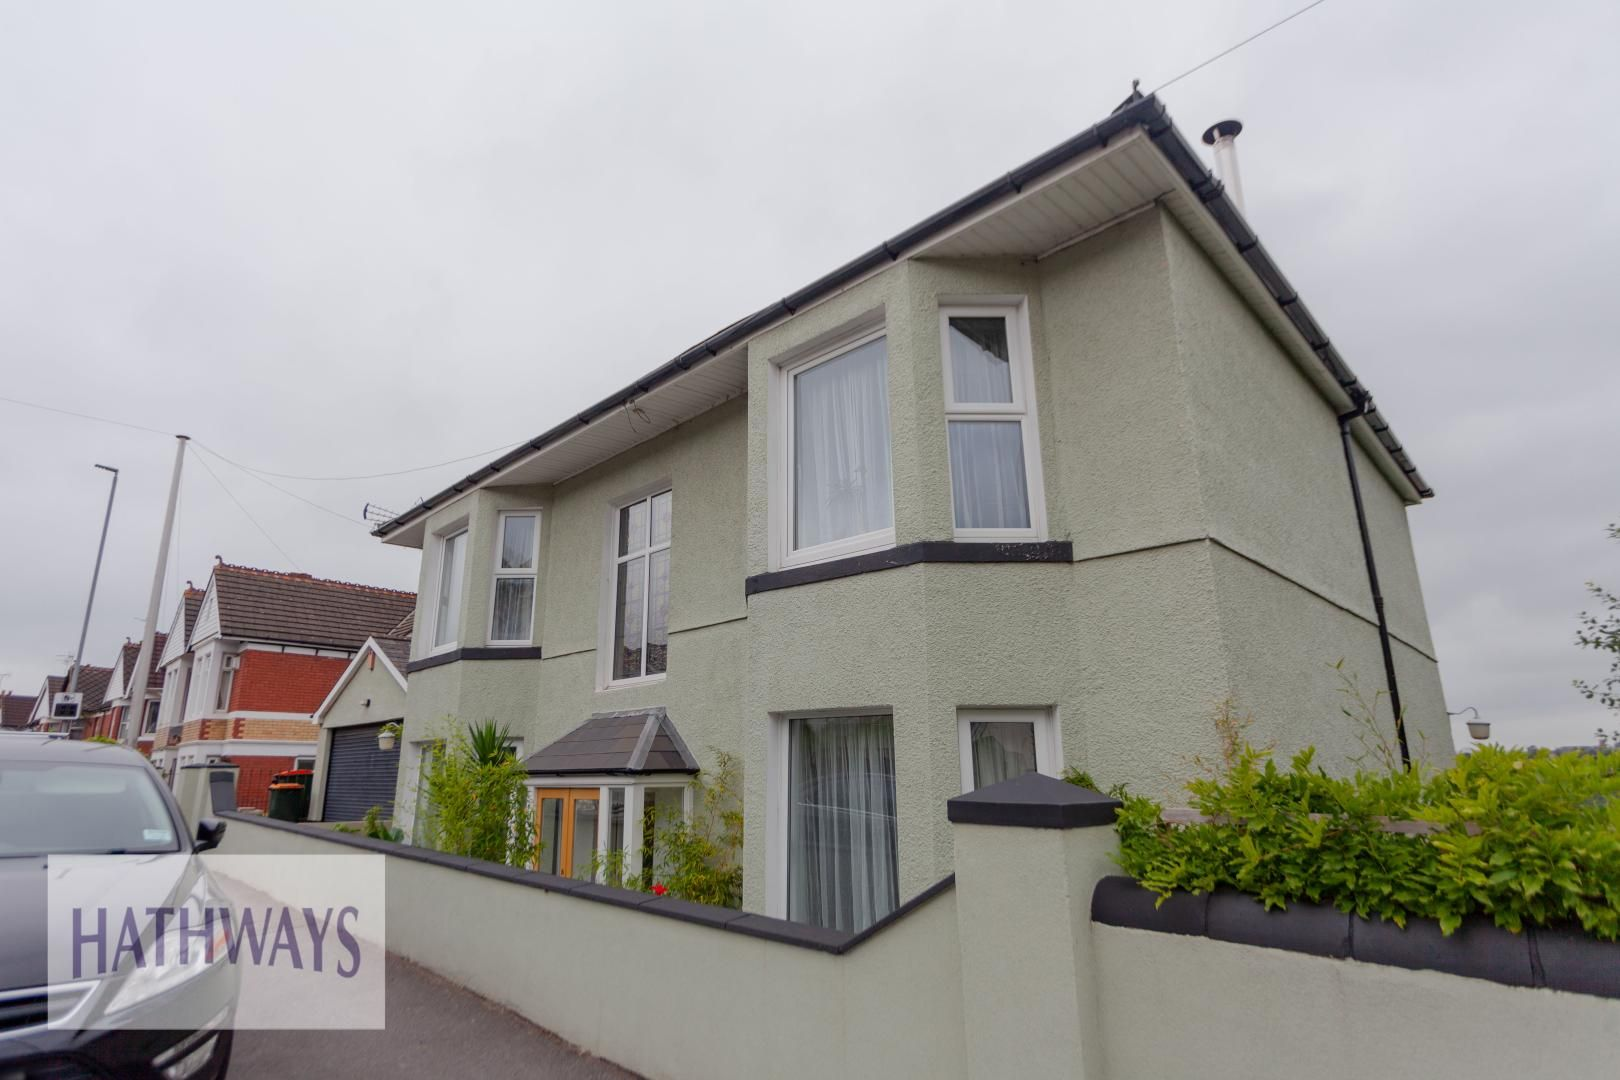 4 bed house for sale in Caerleon Road, NP19